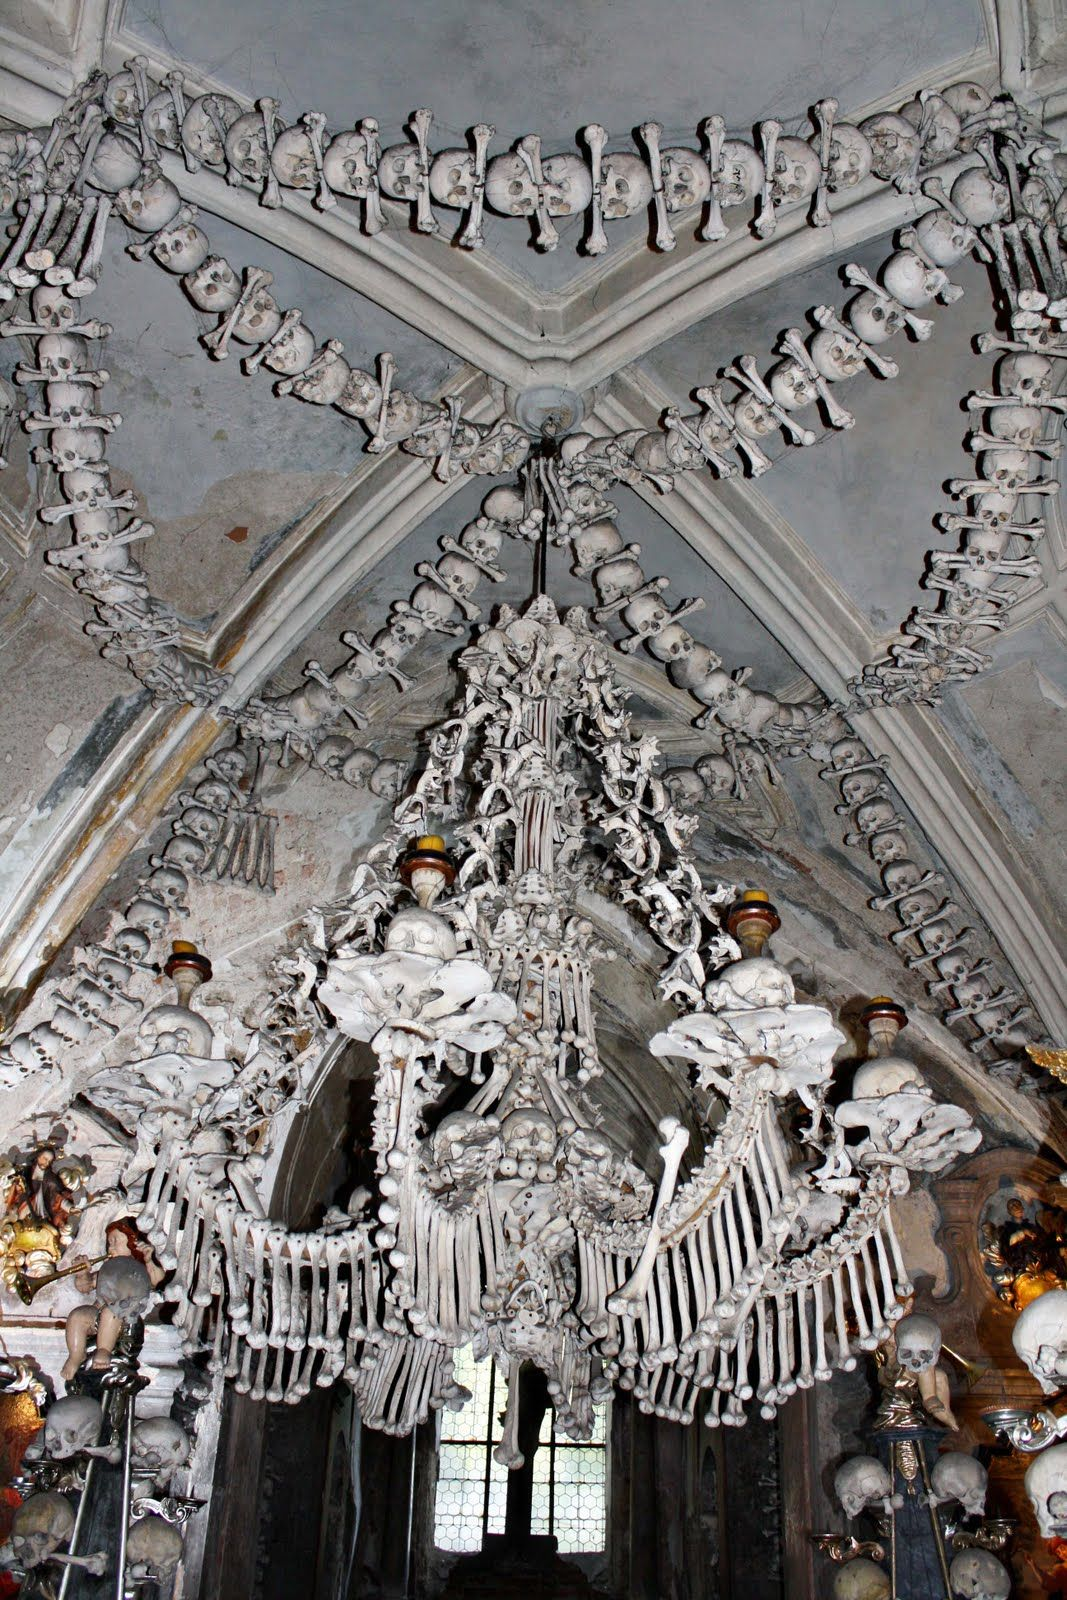 A Chandelier Made Of Human Bone On Display At The Sedlec Church In Prague